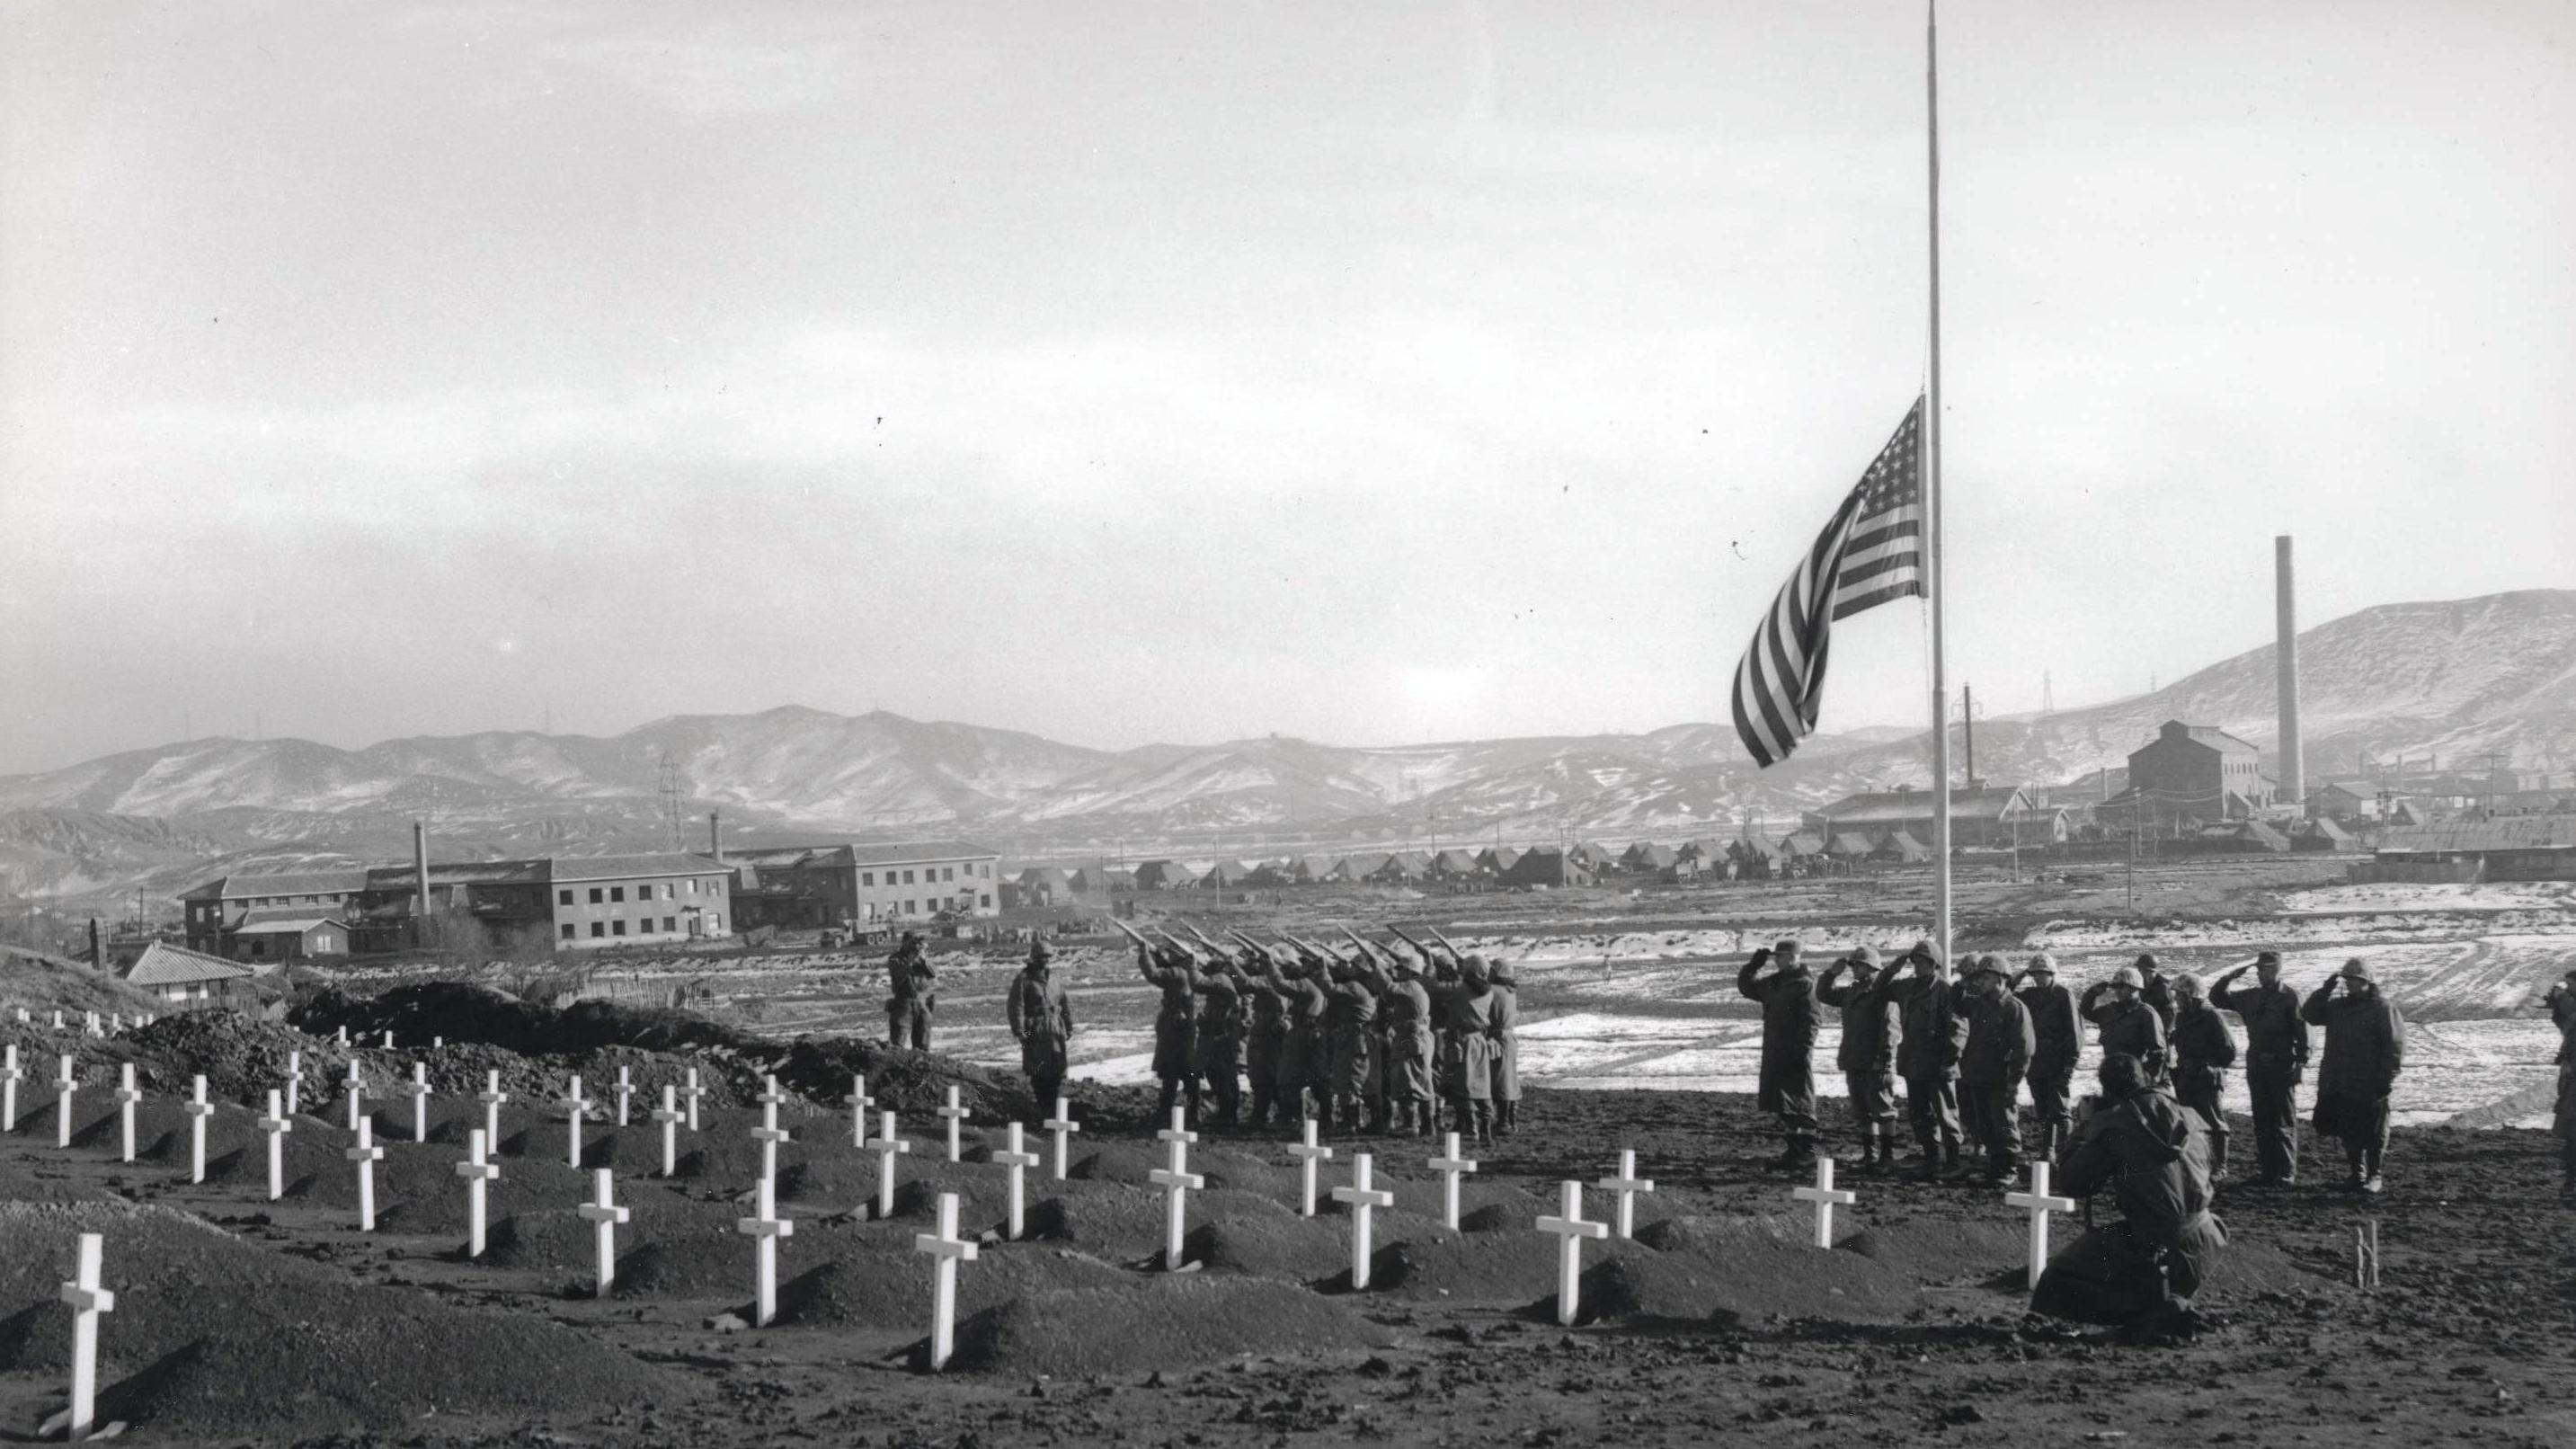 US Marine Cemetery, Hamhung, North Korea Photo Credit: US Marine Corps Archives and Special Collections